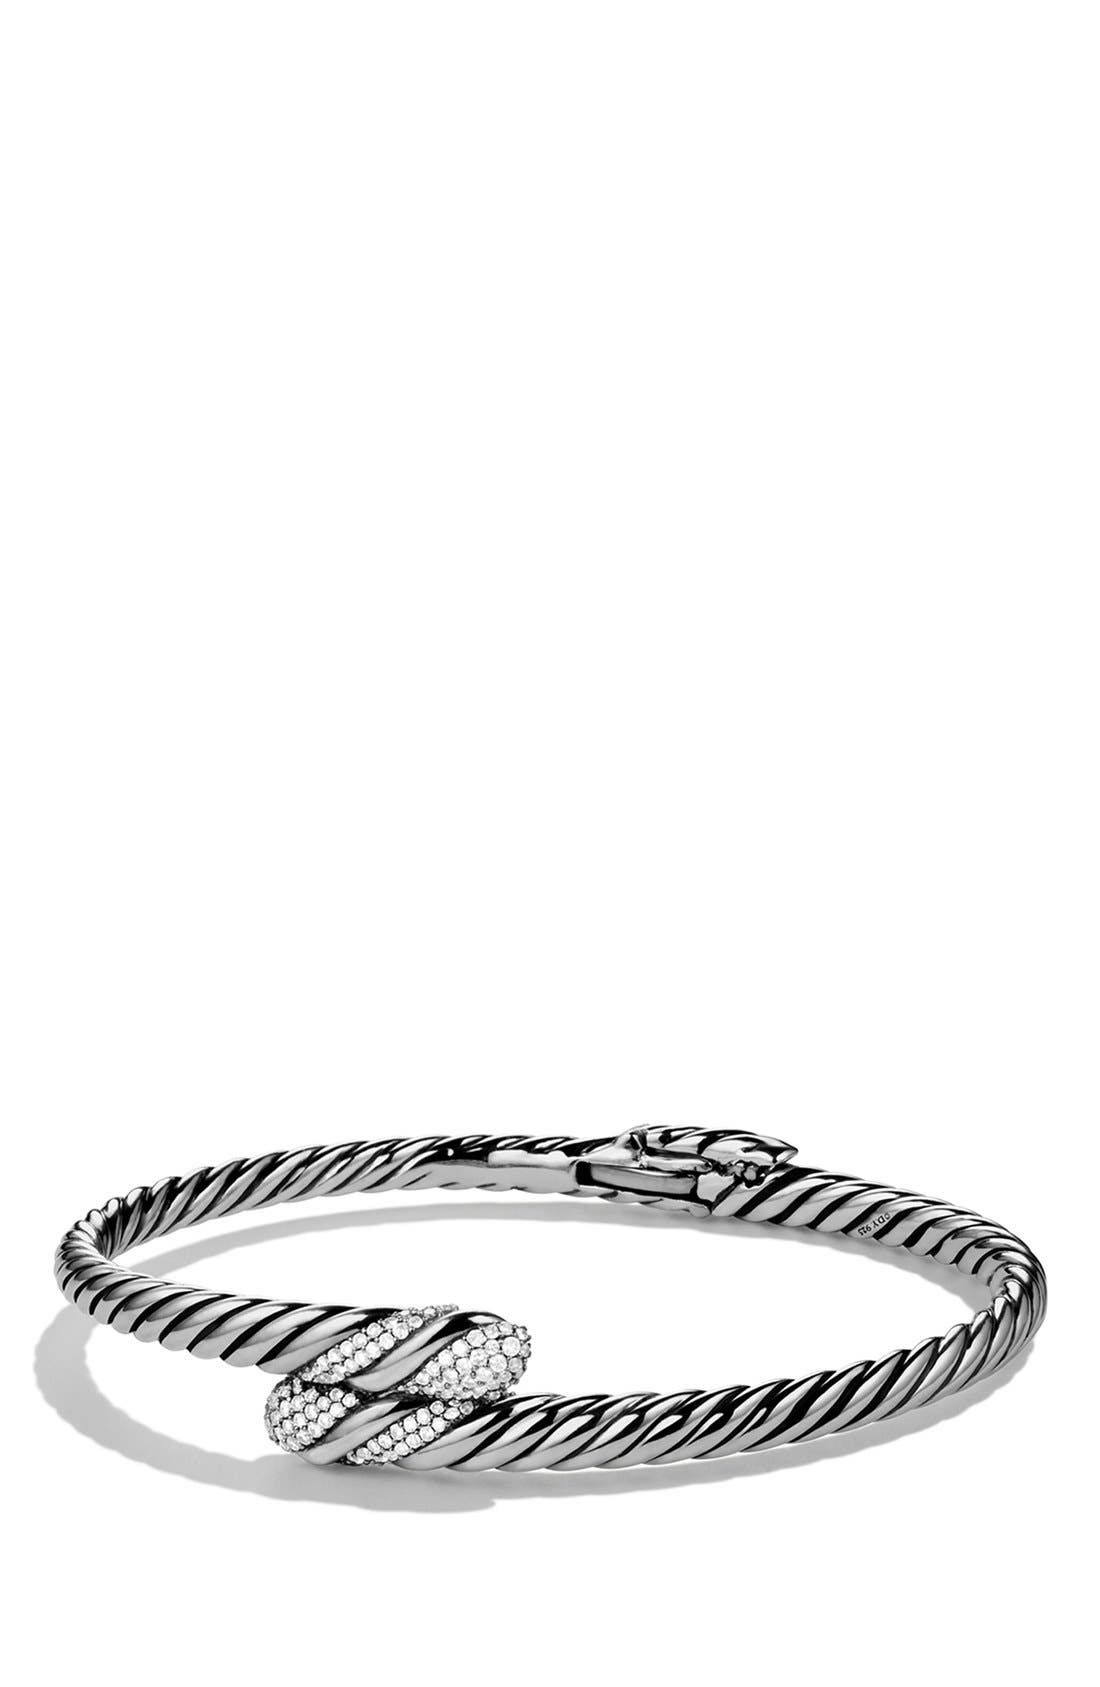 'Willow' Single Row Bracelet with Diamonds,                         Main,                         color,